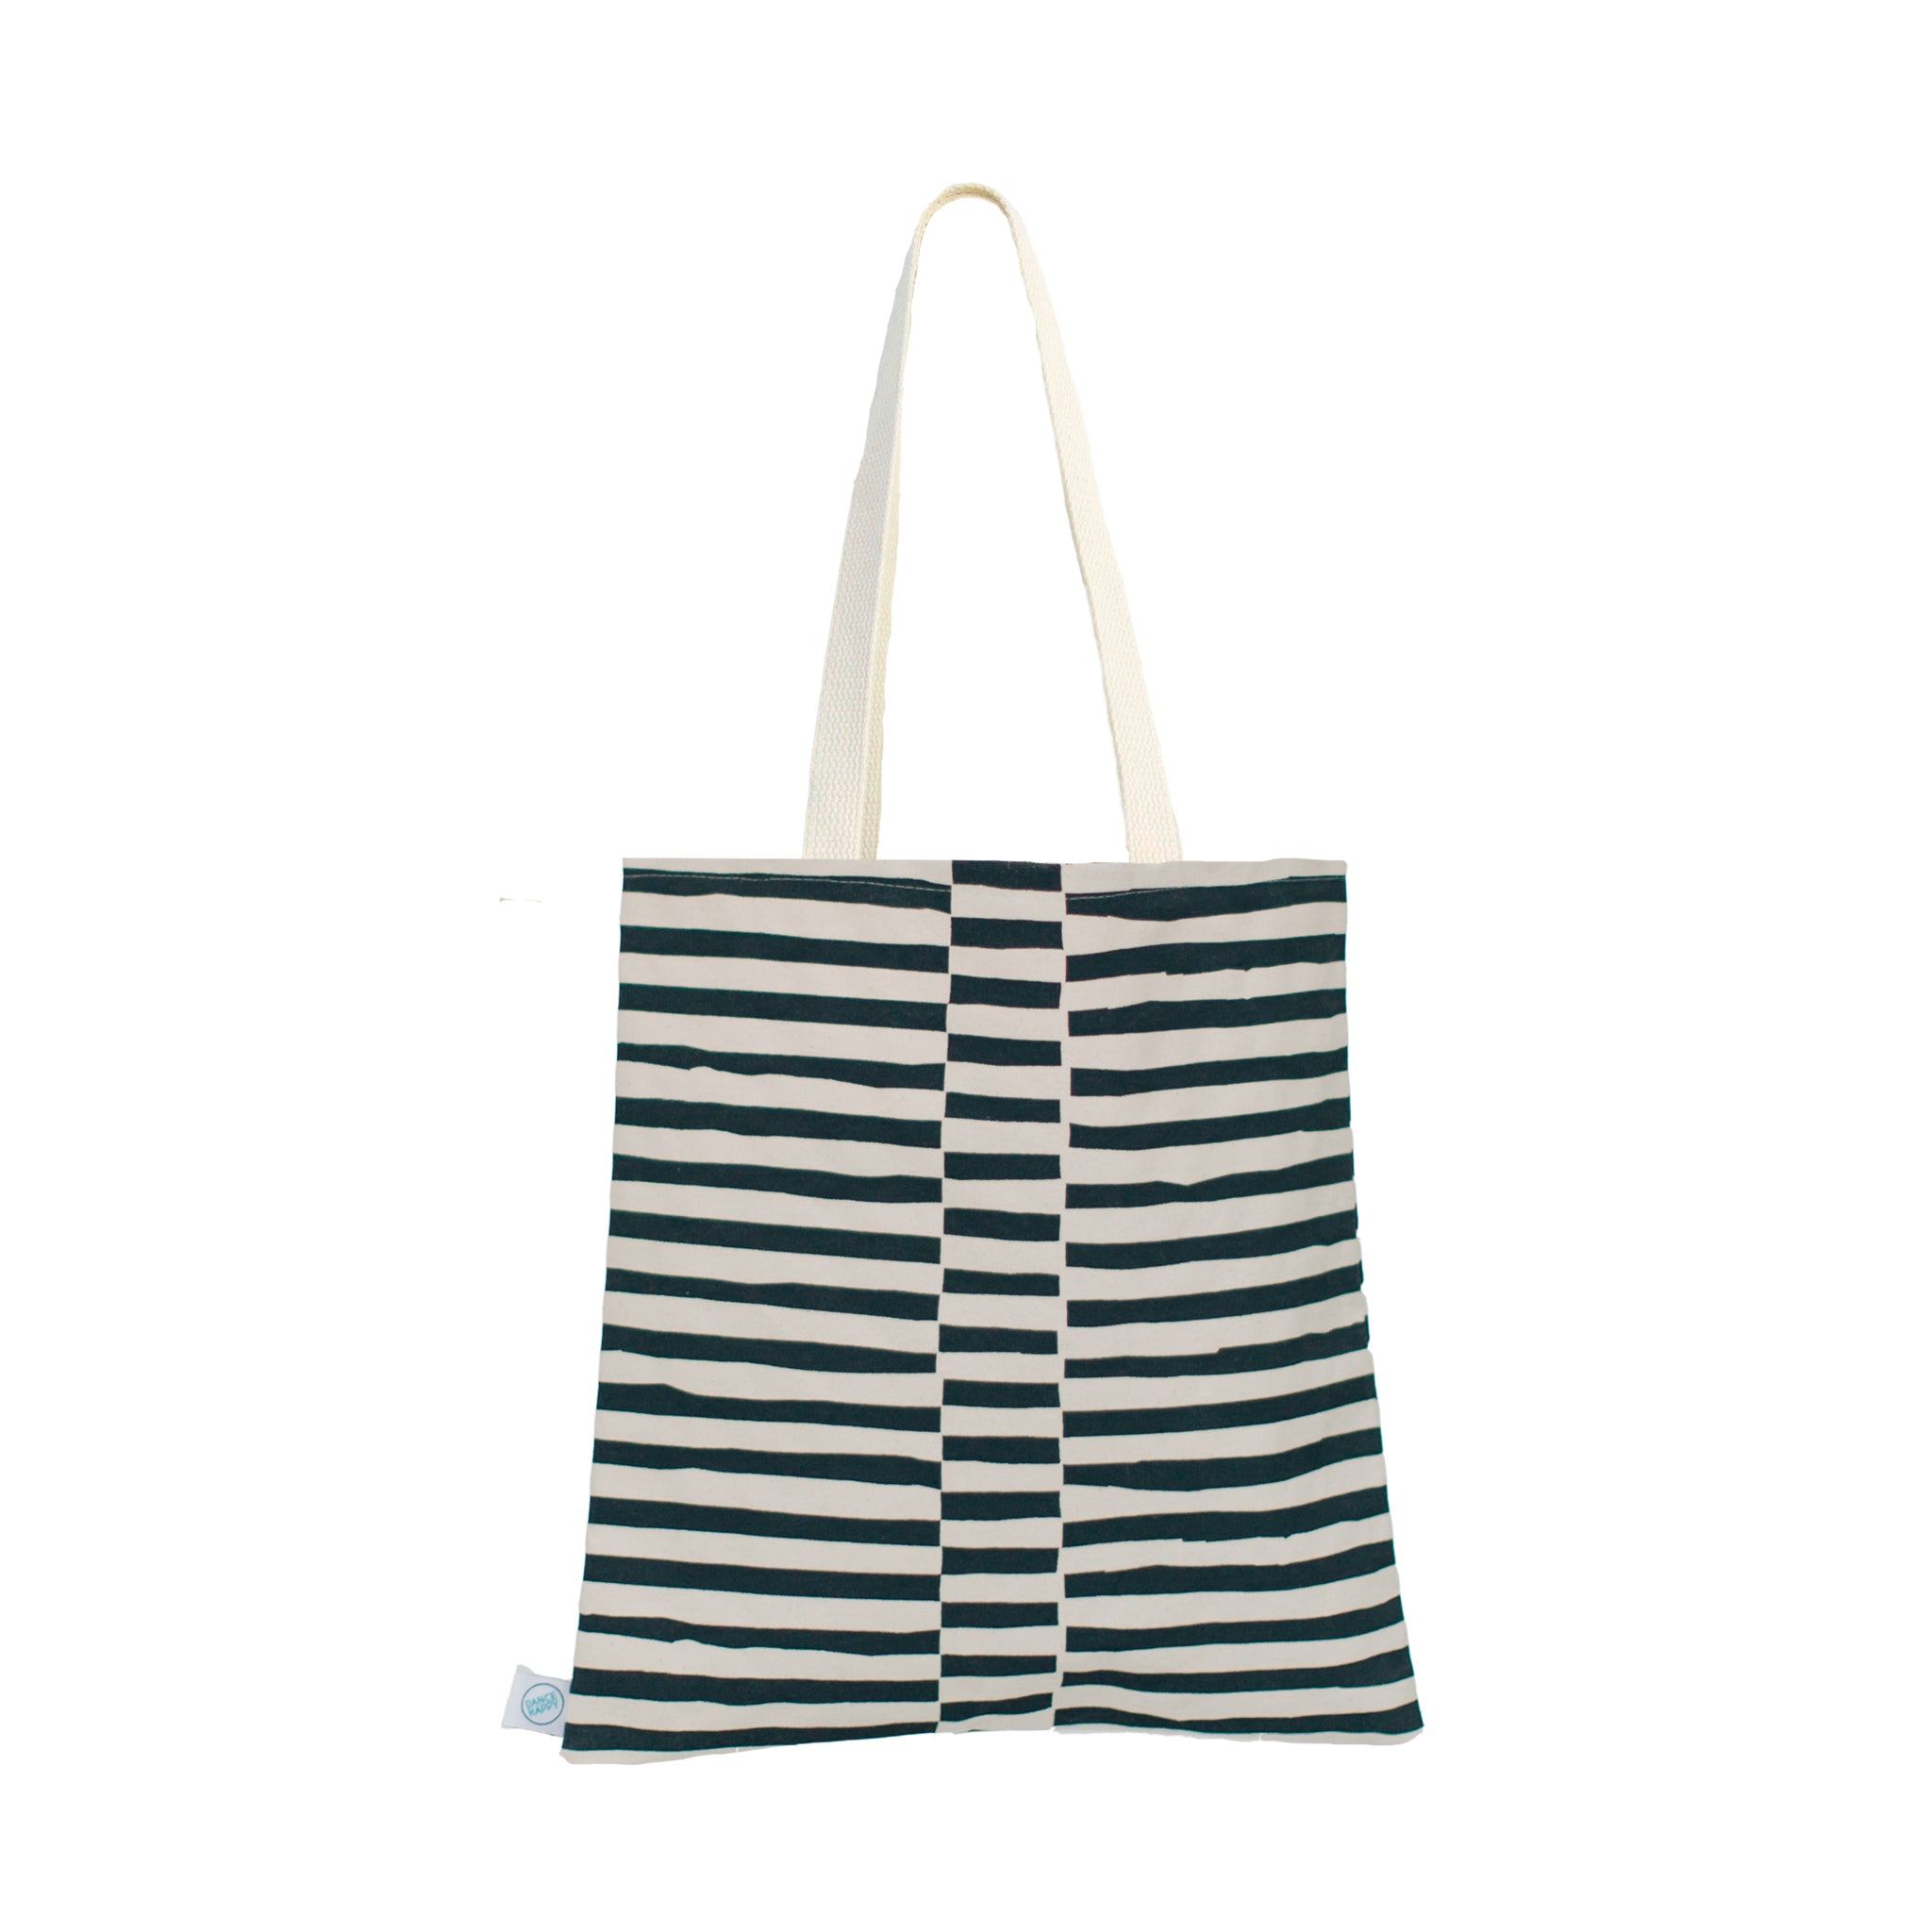 Staggered Lines Flat Tote